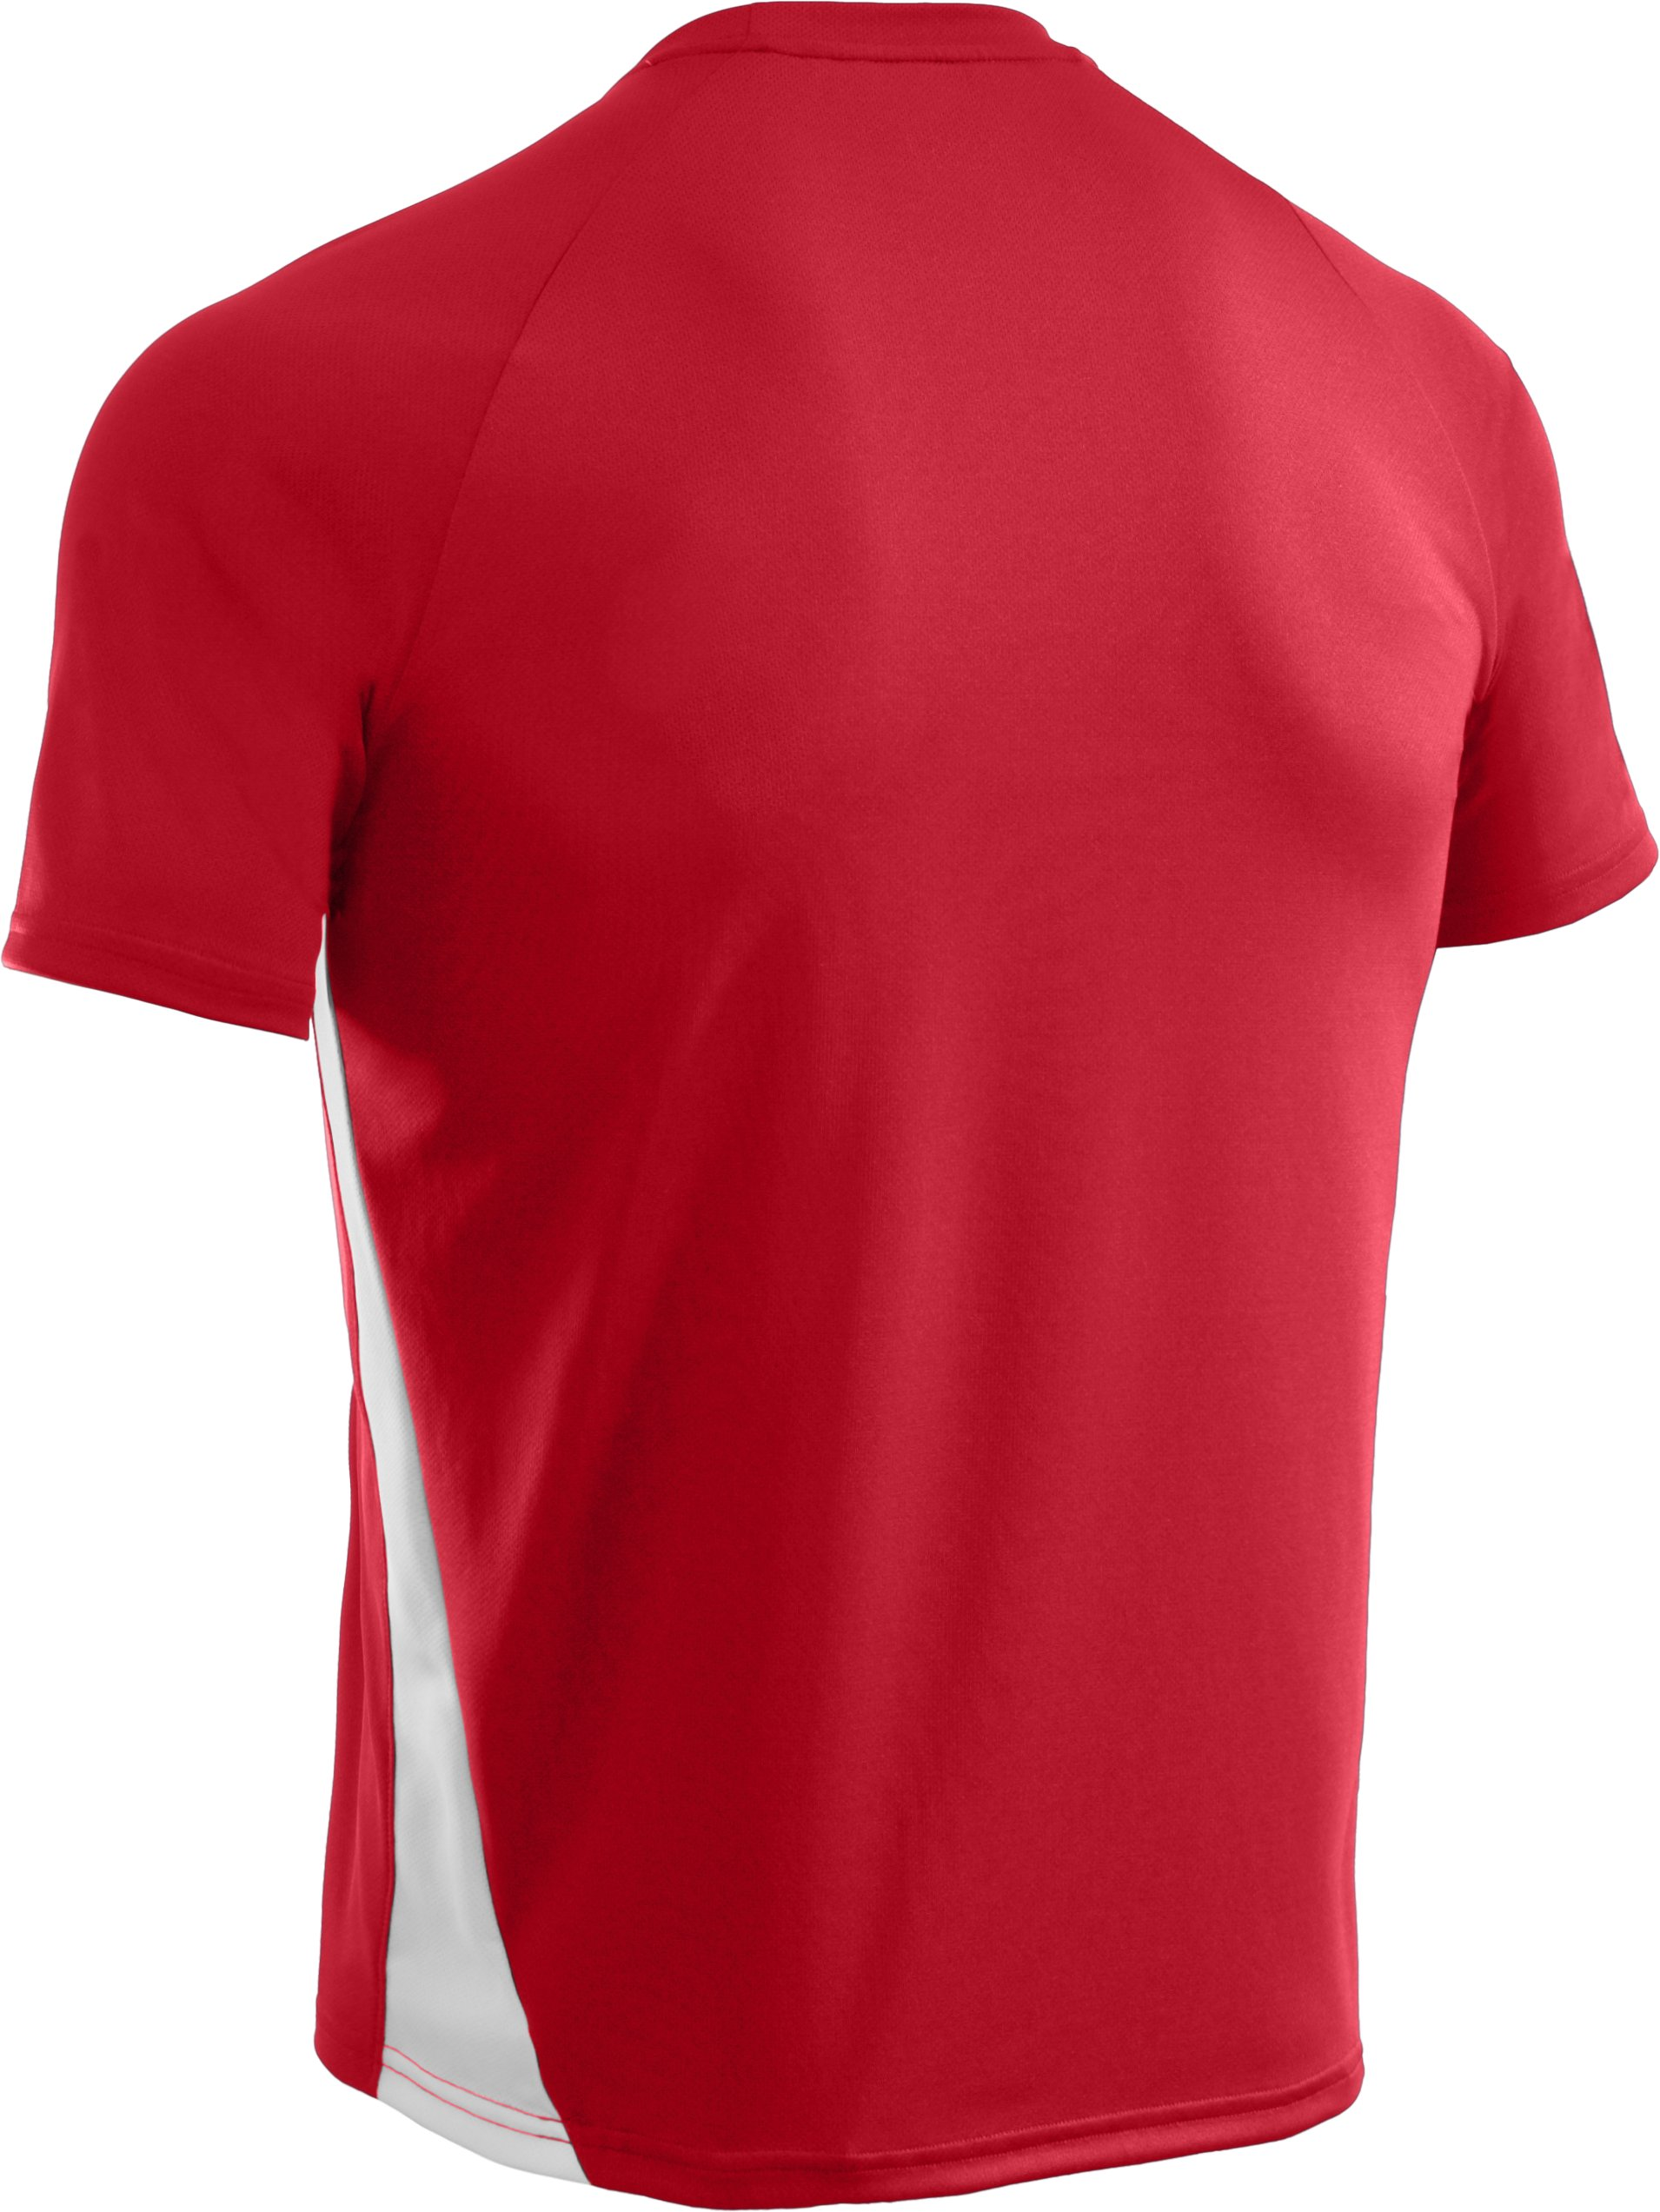 Men's UA Clutch Short Sleeve Jersey, Red